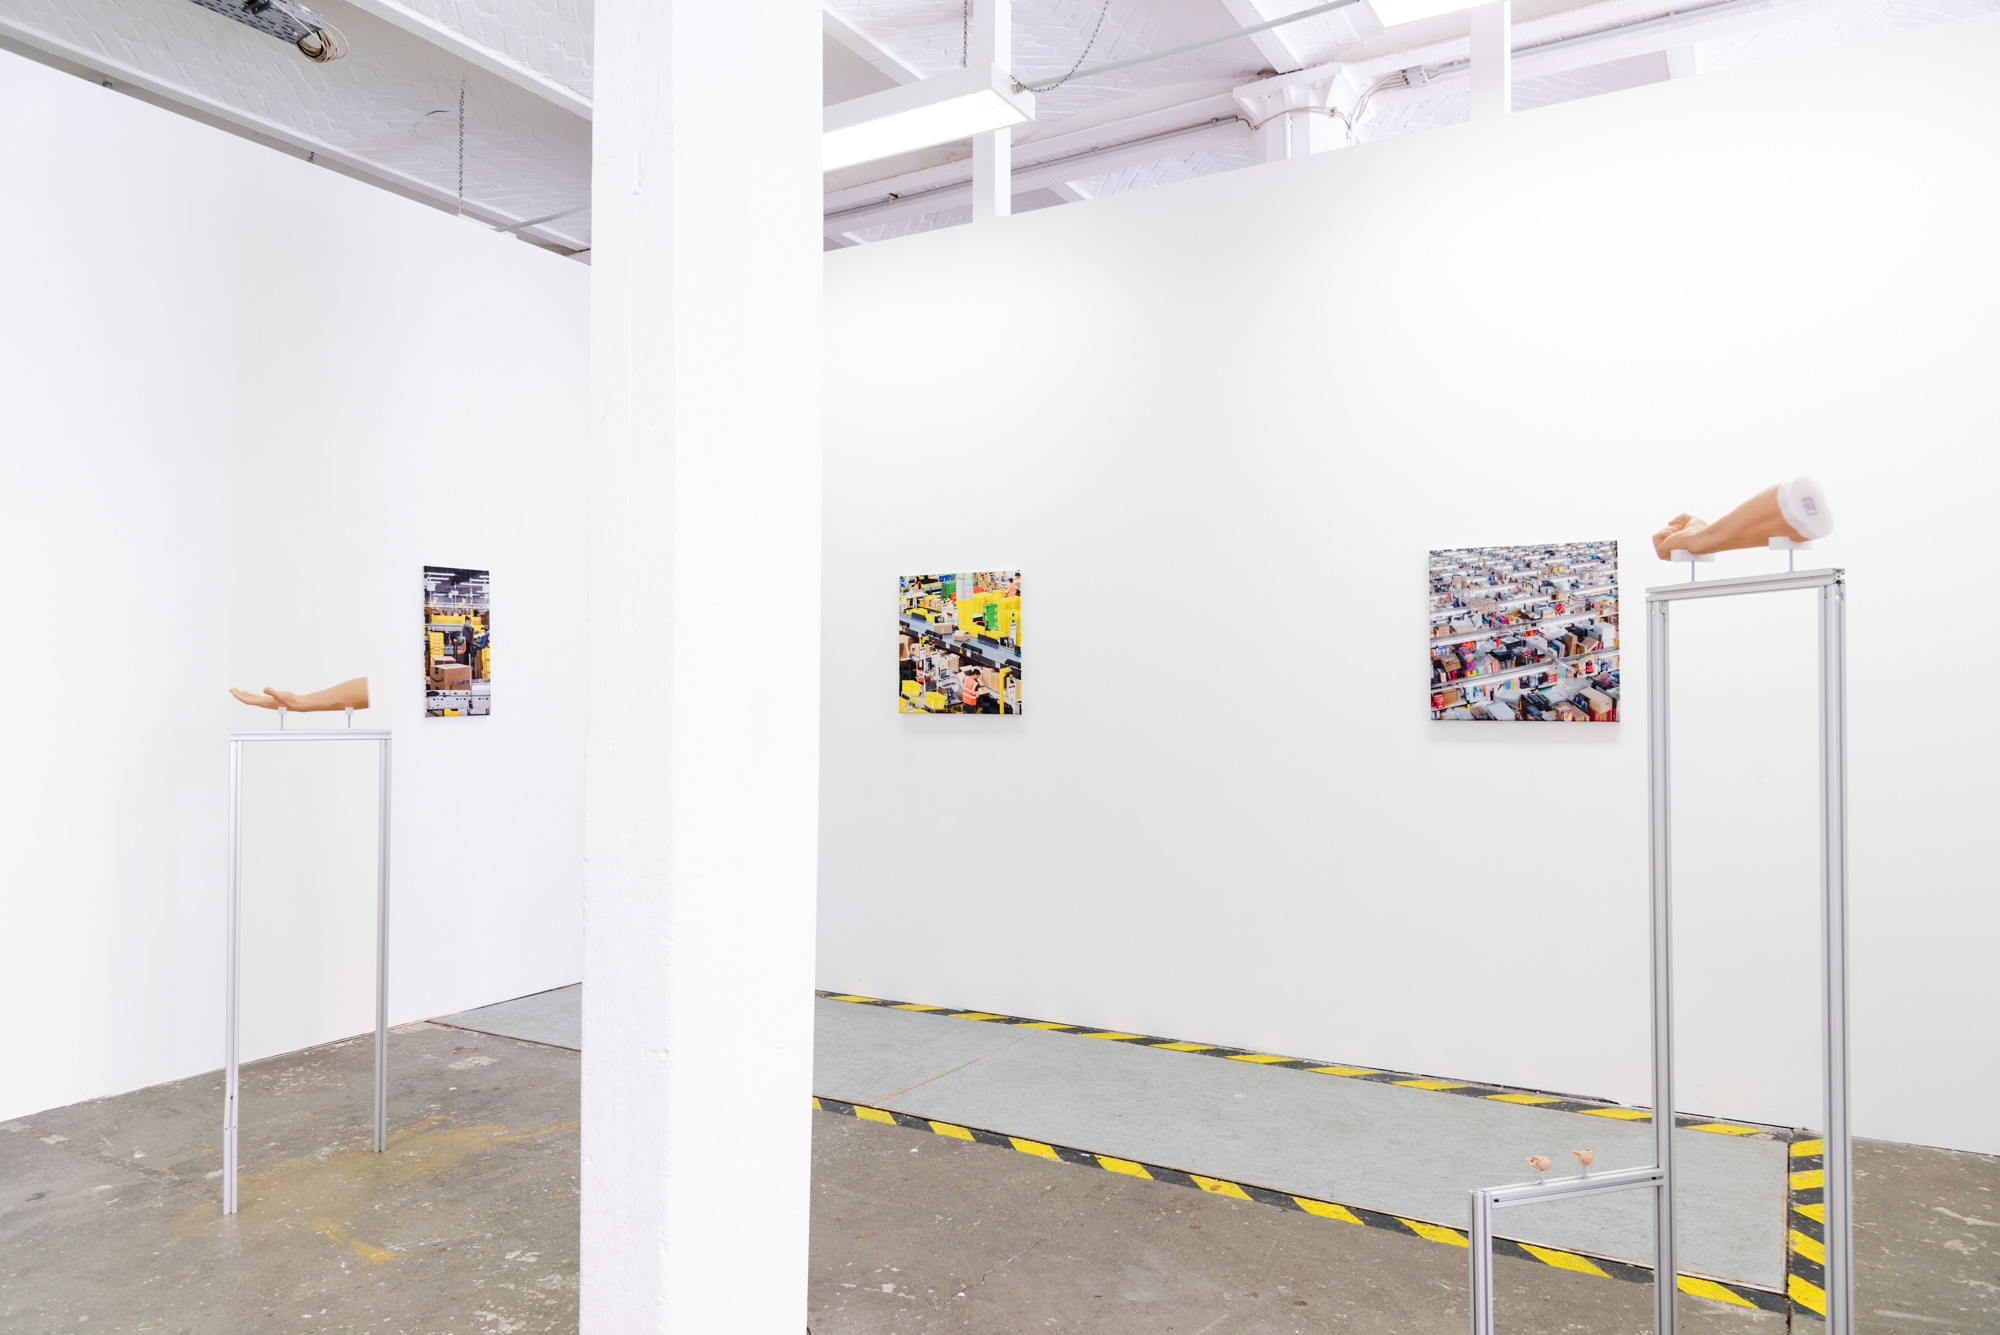 Bob_Bicknell_Knight_It_is_Always_day_one_exhibition_view_15_Photo_Luke_Marshall_Johnson